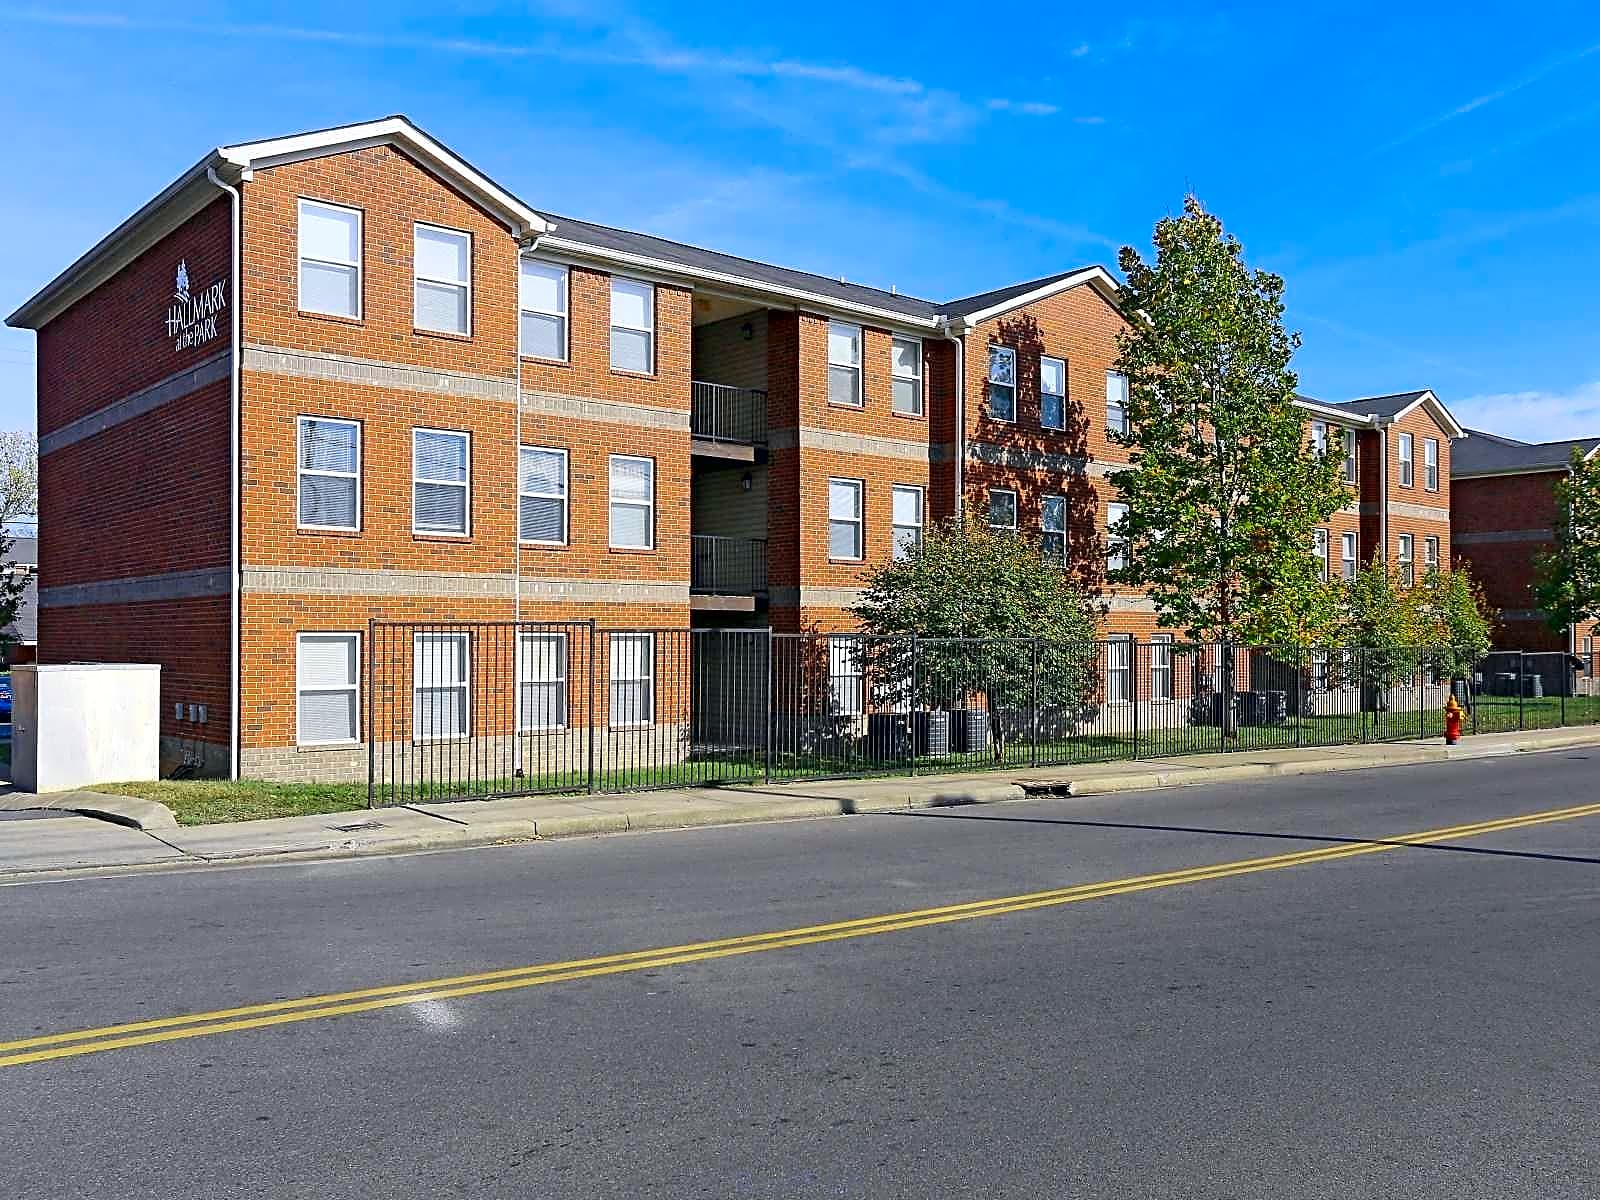 Hallmark At The Park Apartments  Nashville, Tn 37203. What Is Brokerage Account Sql Format Datetime. Human Resource Colleges Insurance Agent Leads. Waterproofing Contractors Inc. Best Treatment For Dark Under Eye Circles. Side Effect Of Nasal Spray Sell Diamond Rings. Georgia Medical Power Of Attorney. Where To Buy Credit Card Ross Park Elementary. Universal Technical Institution